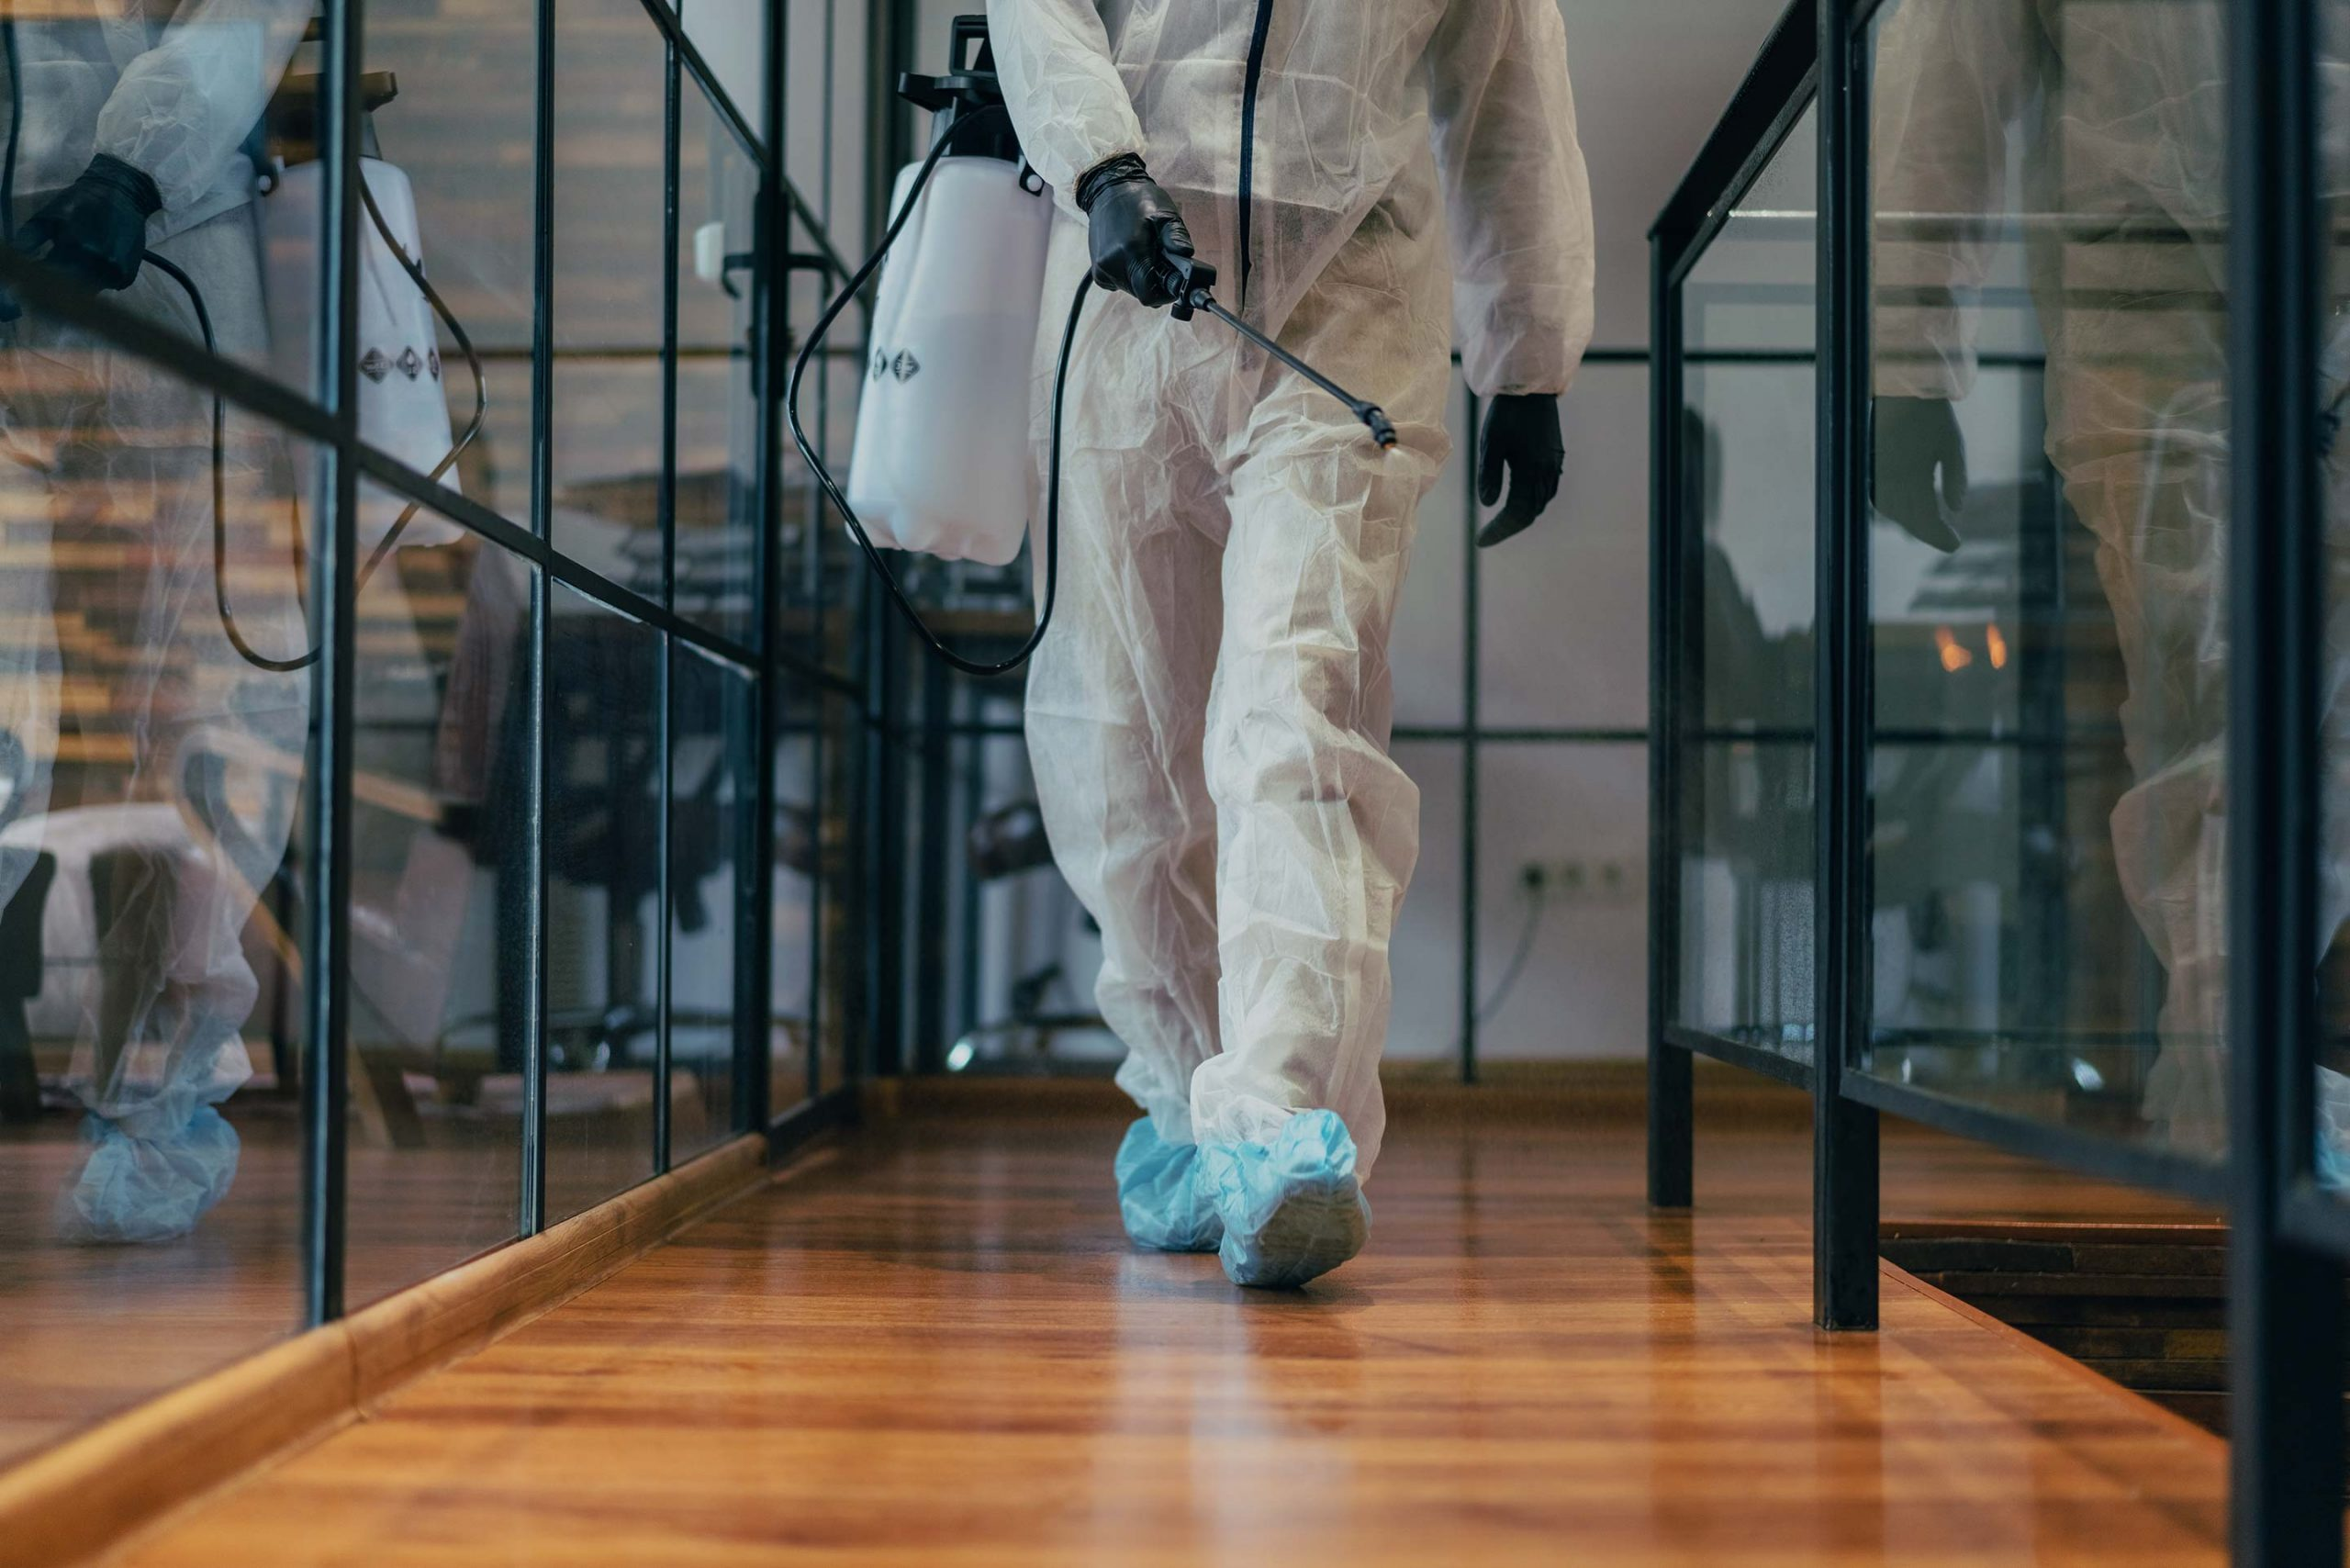 Invest in an anti-microbial disinfectant for your business